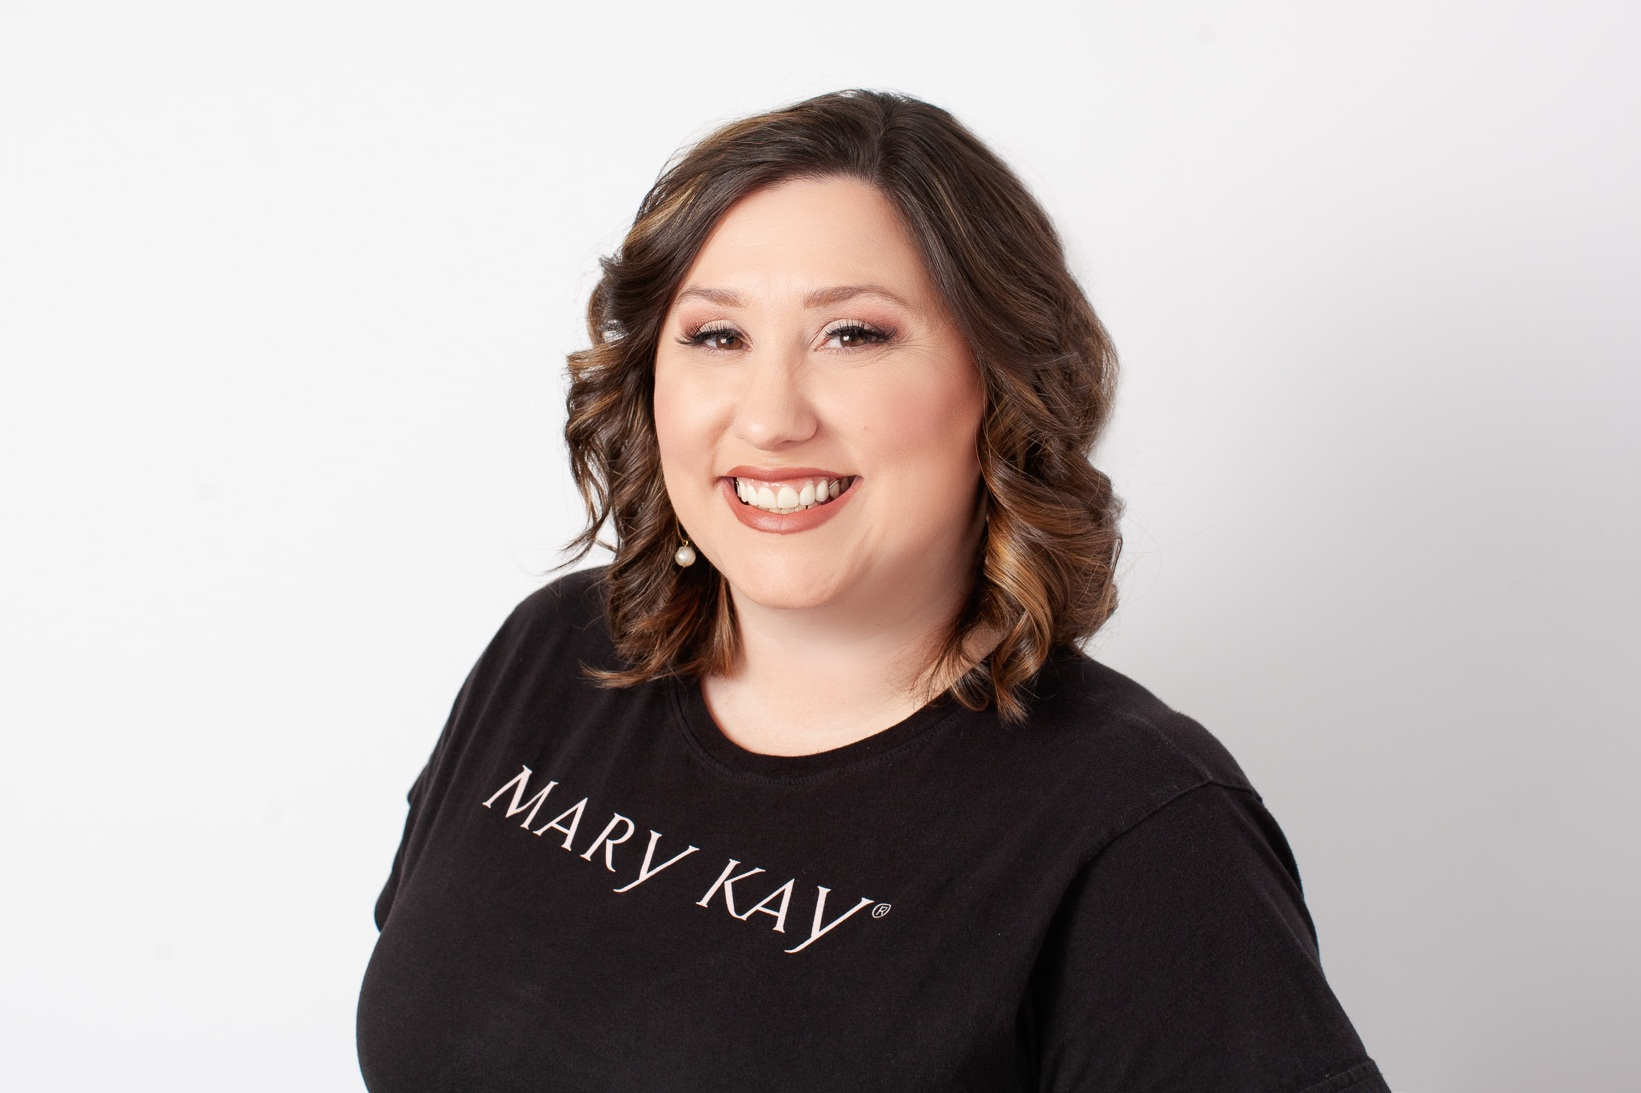 mary kay smiling woman headshot new braunfels headshot photographer